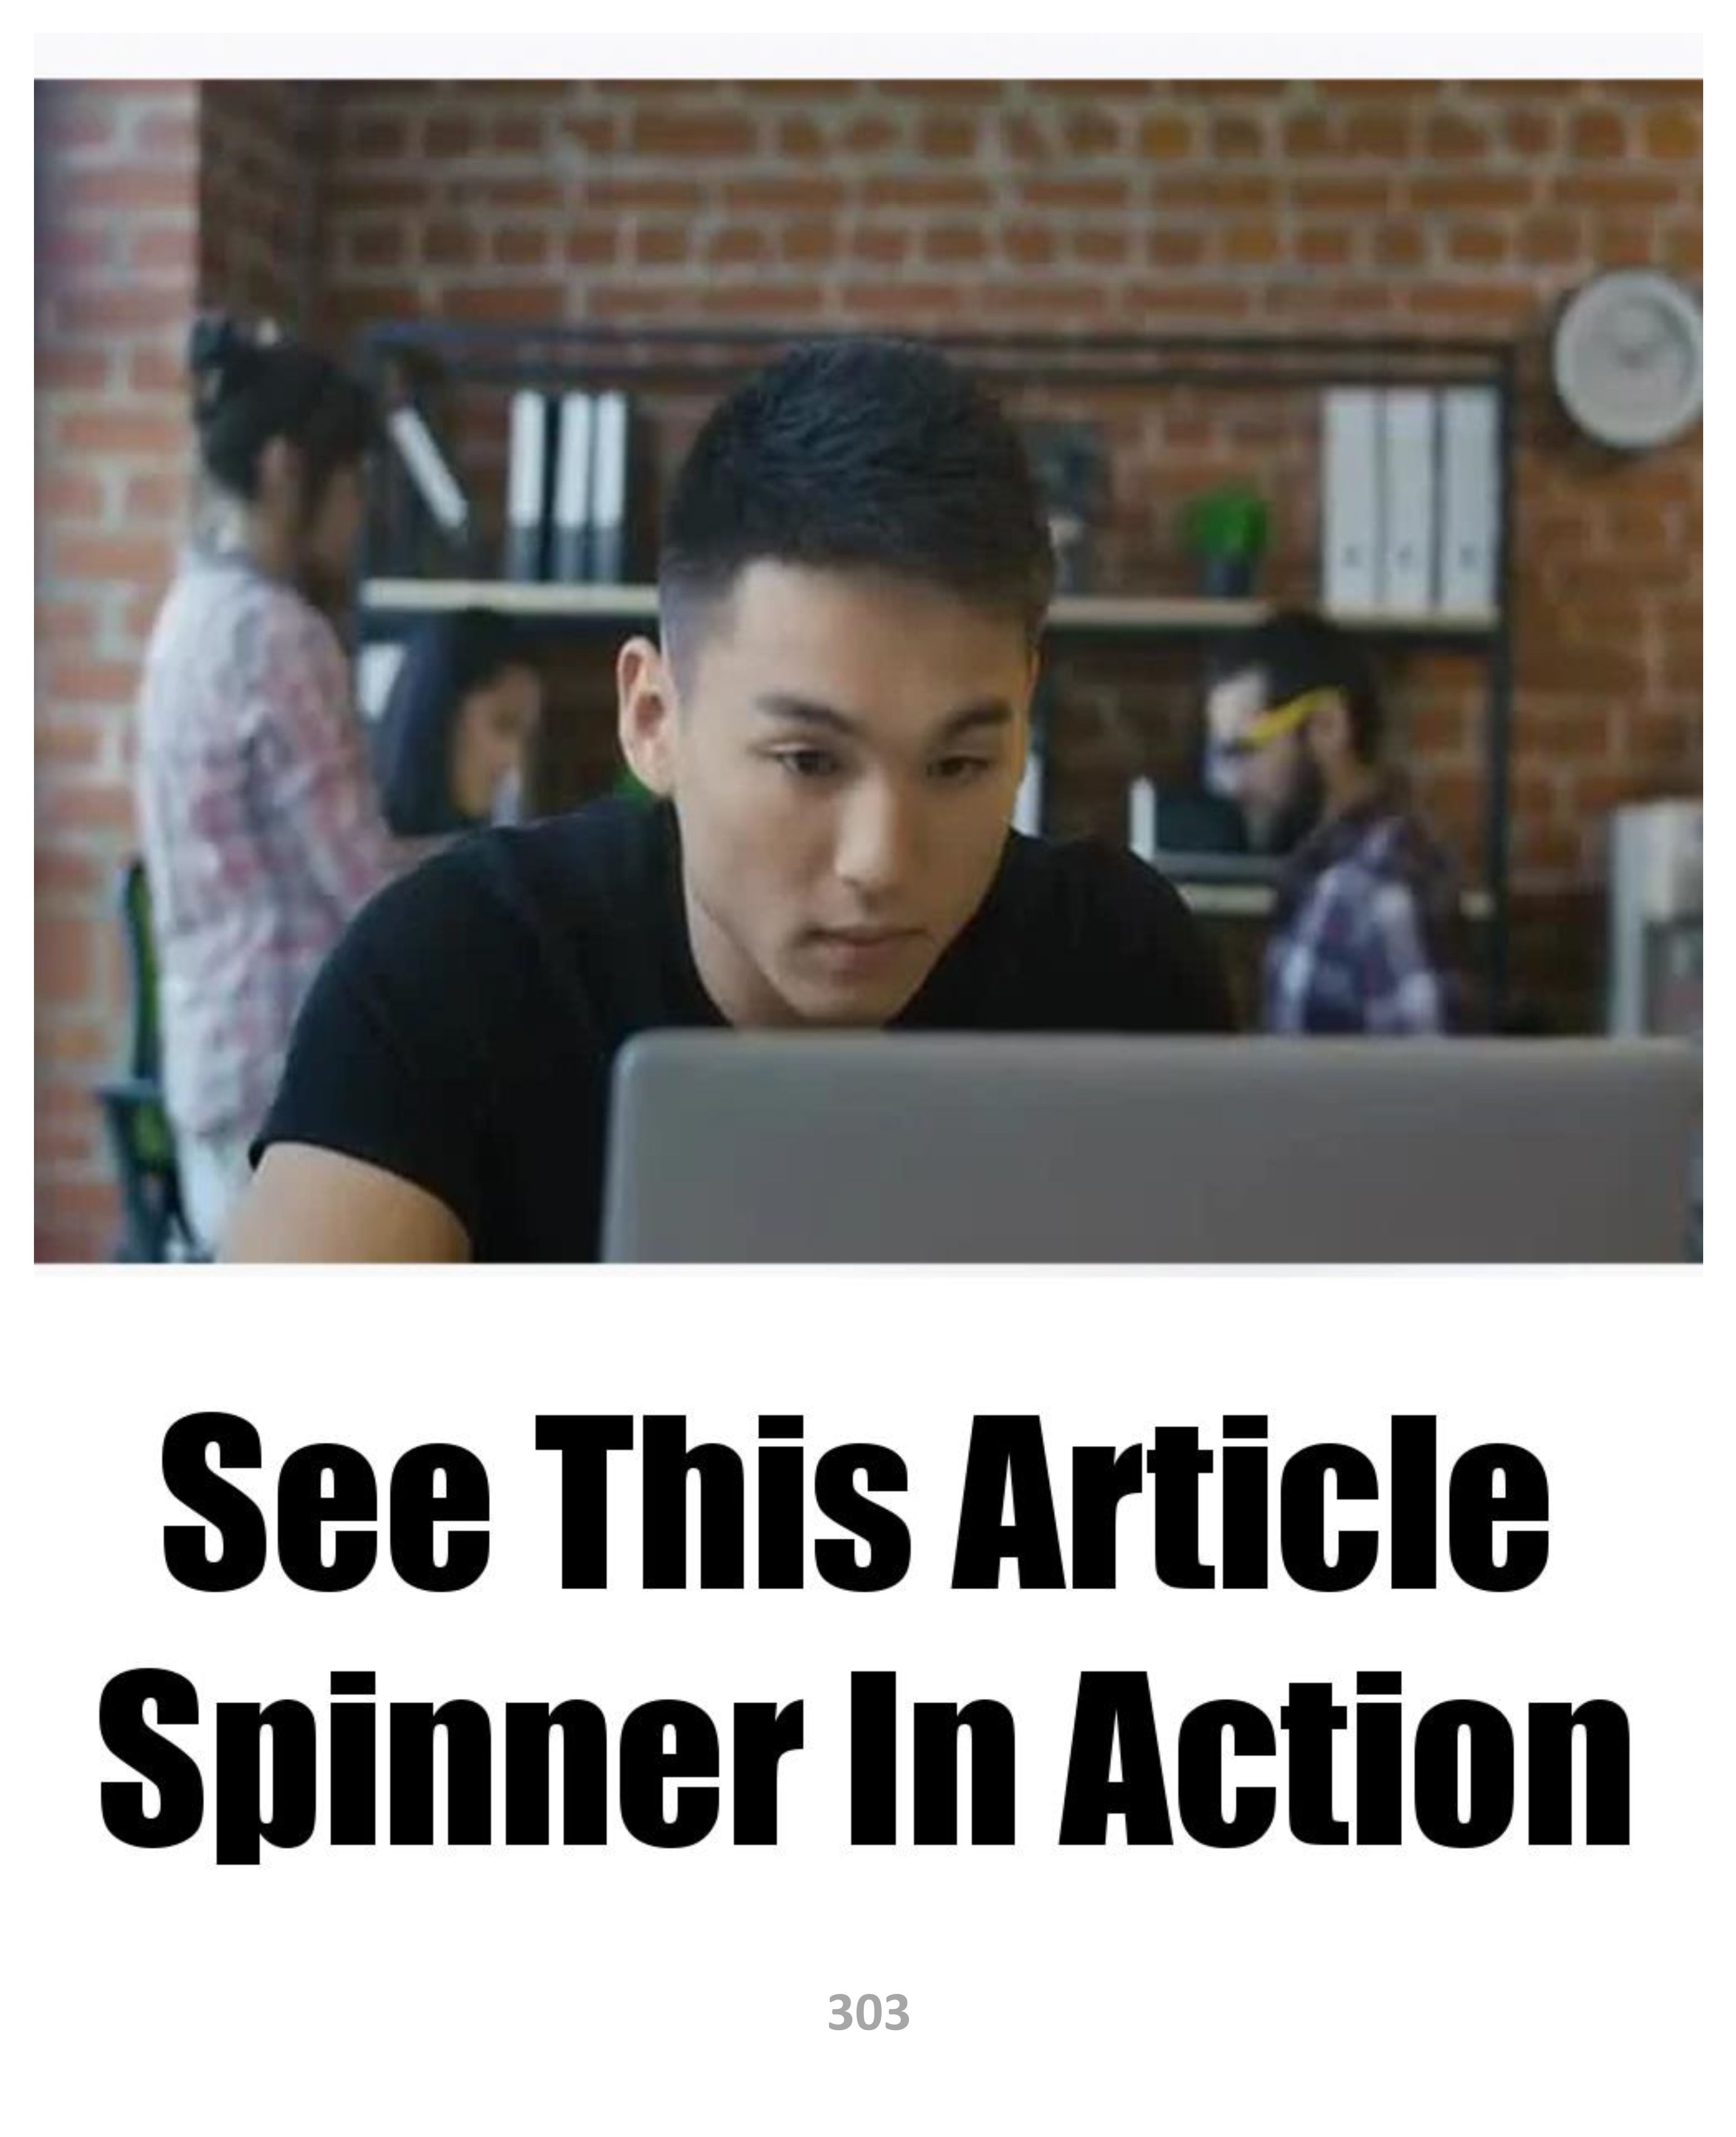 Spinbot Use My Article Spinner Instead Class tools, This